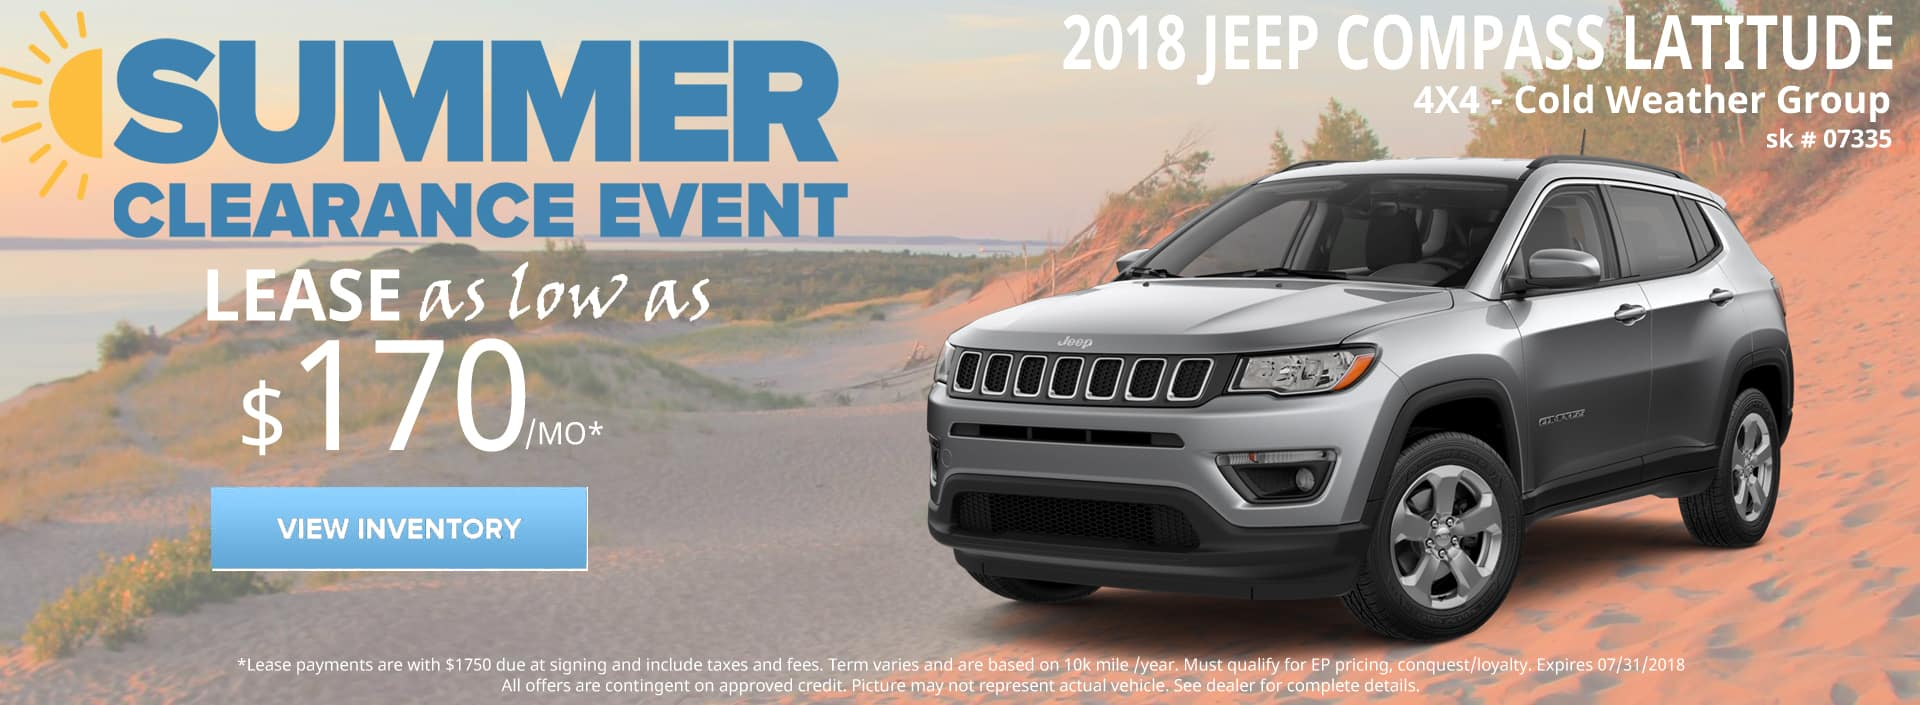 July 2018 Special Jeep Compass